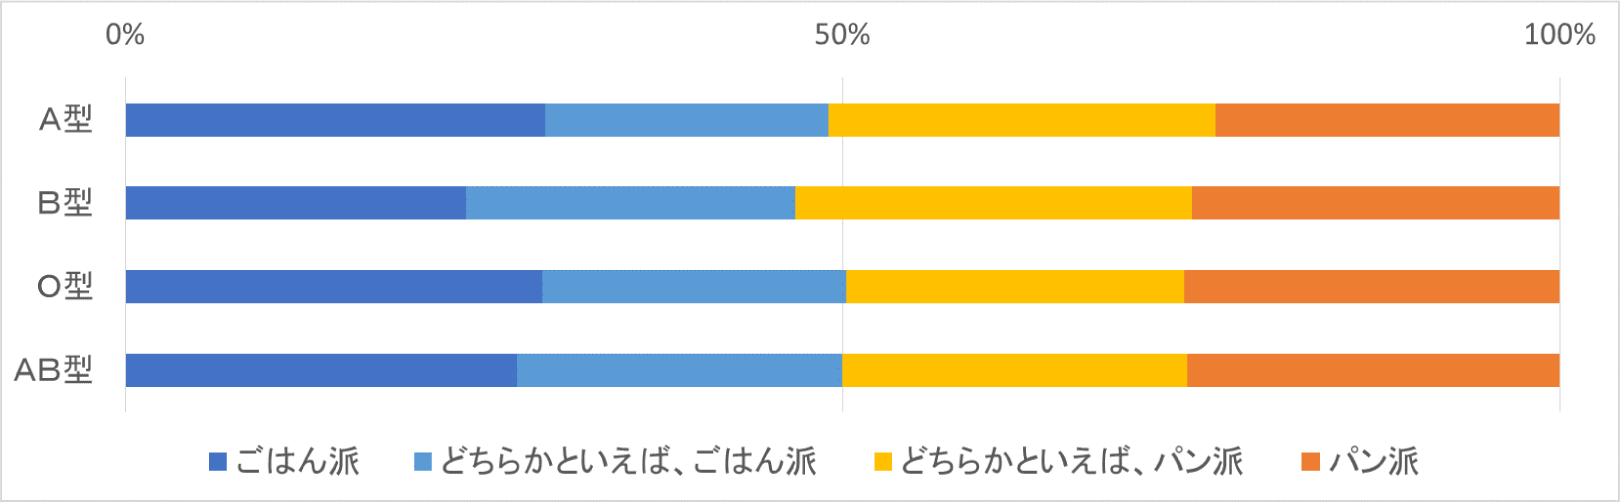 201809-03-fig-05.png